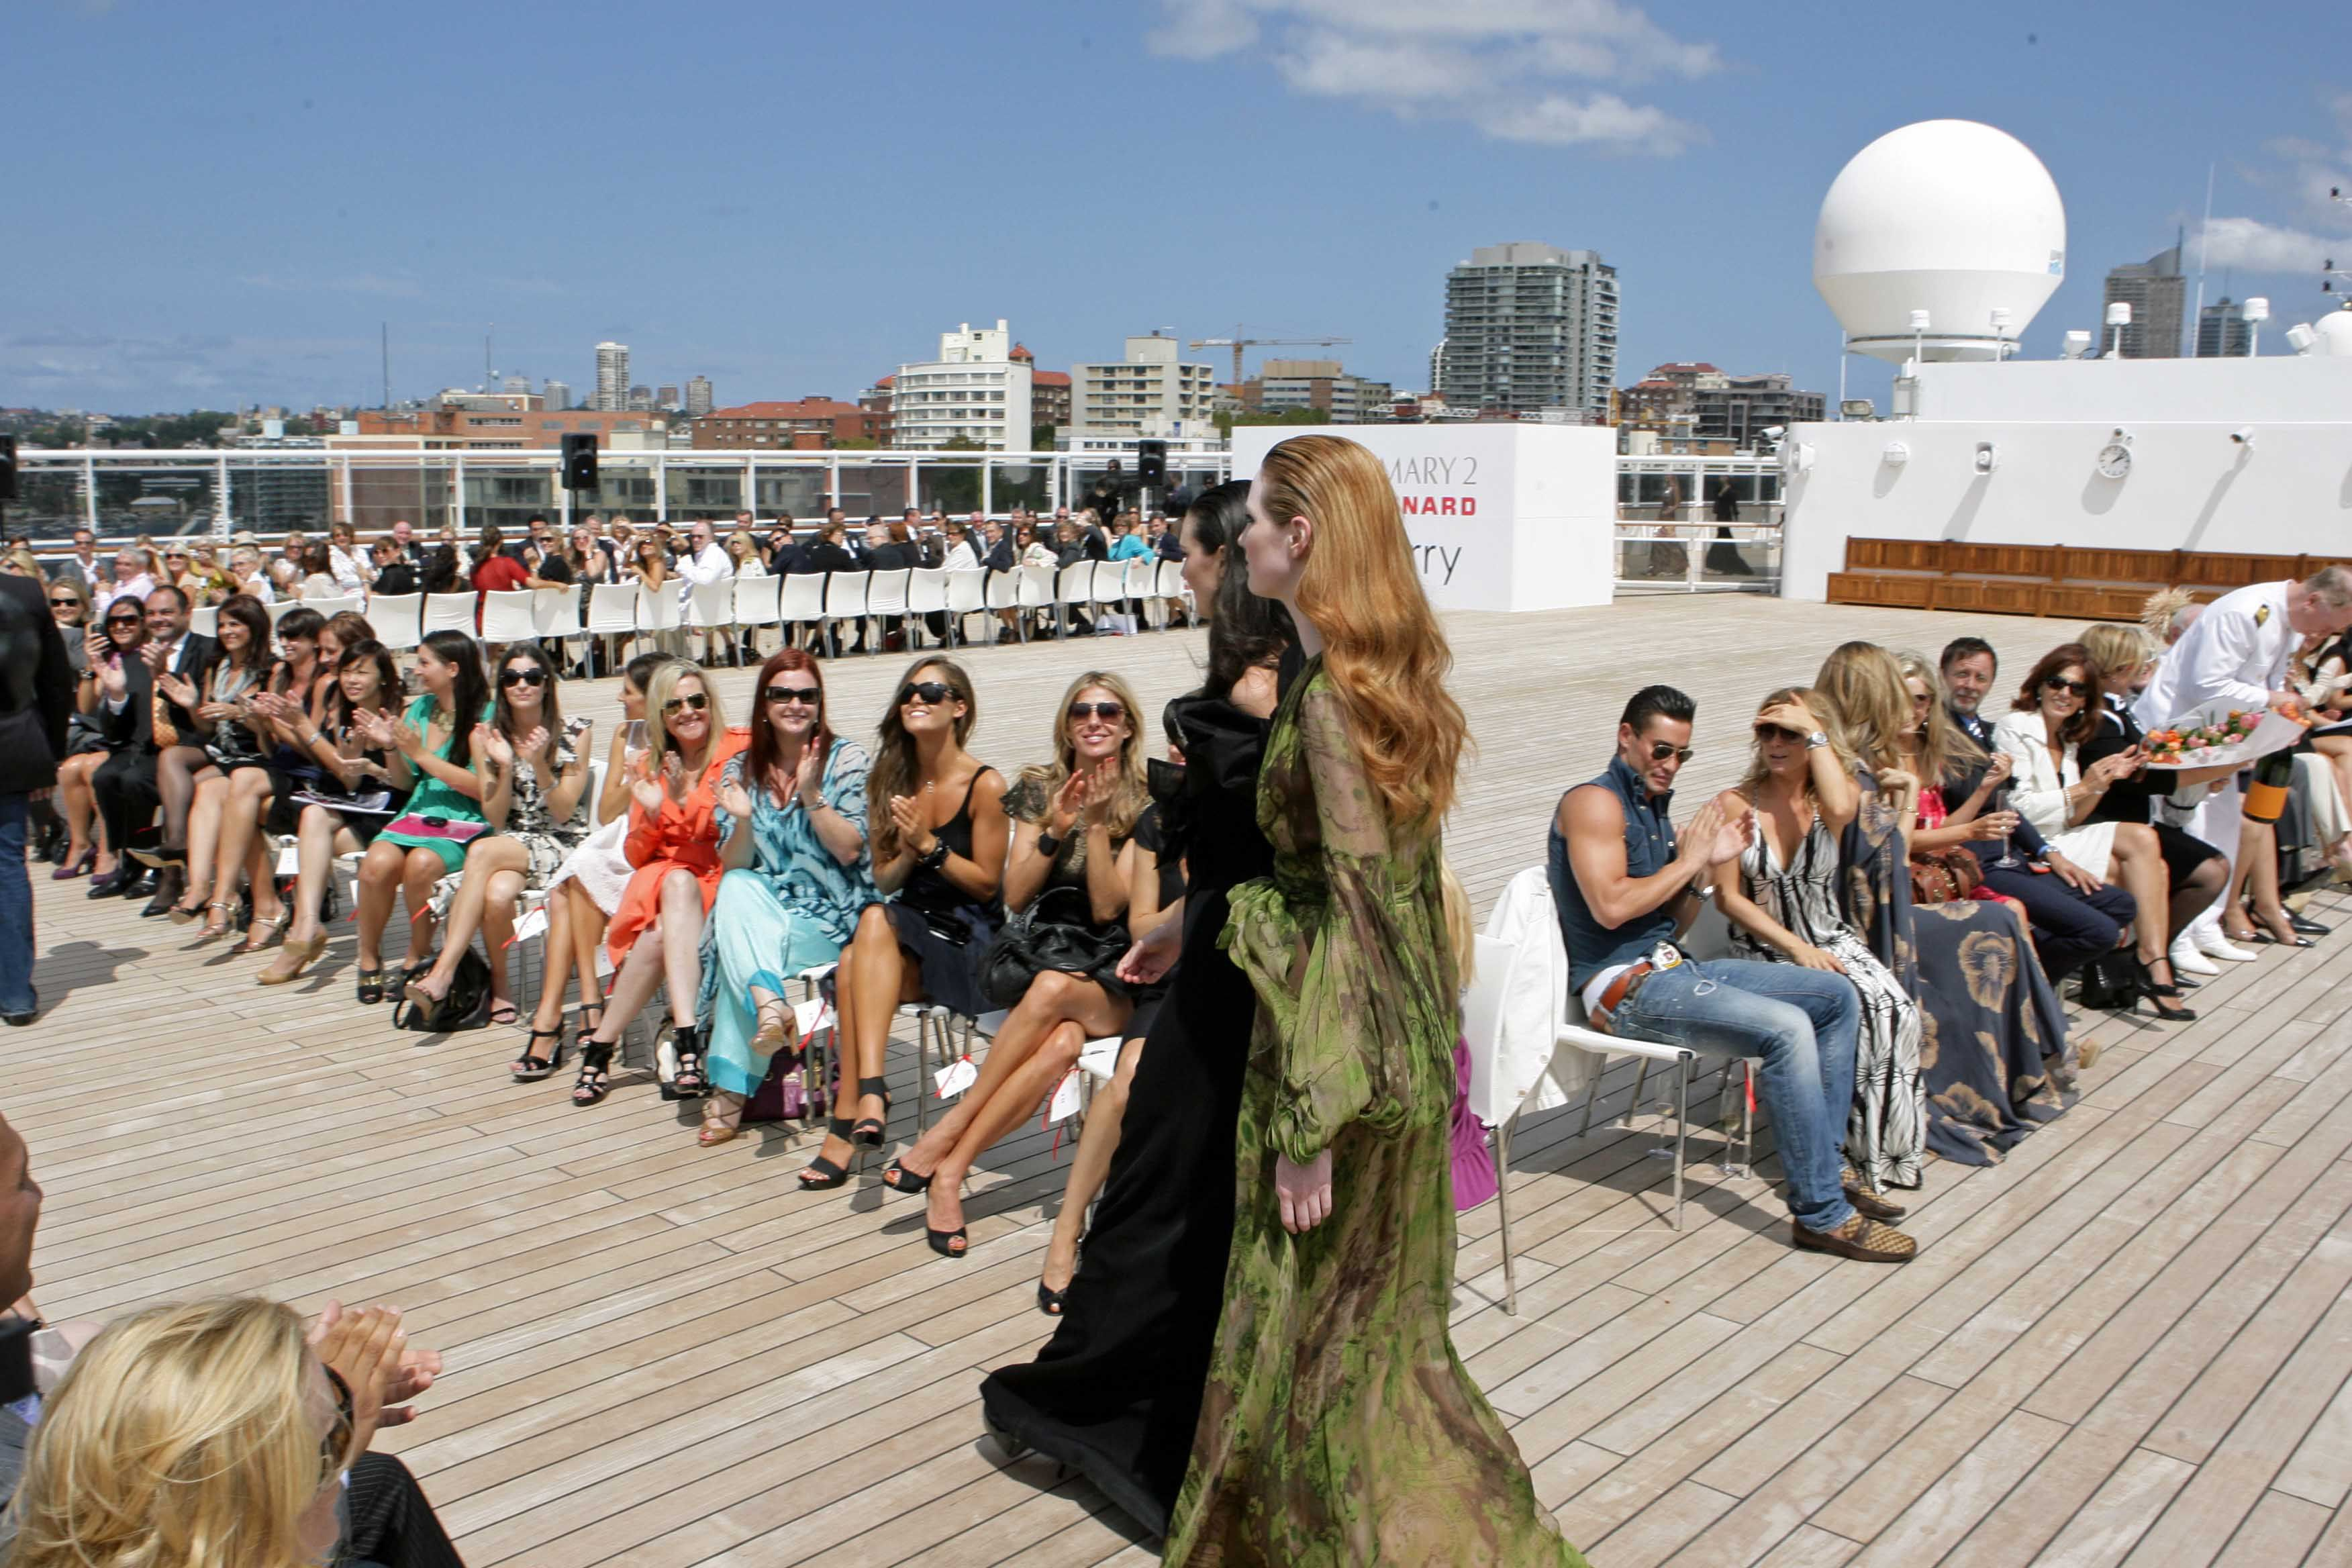 Art shows and fashion shows can run up cruise expenses.